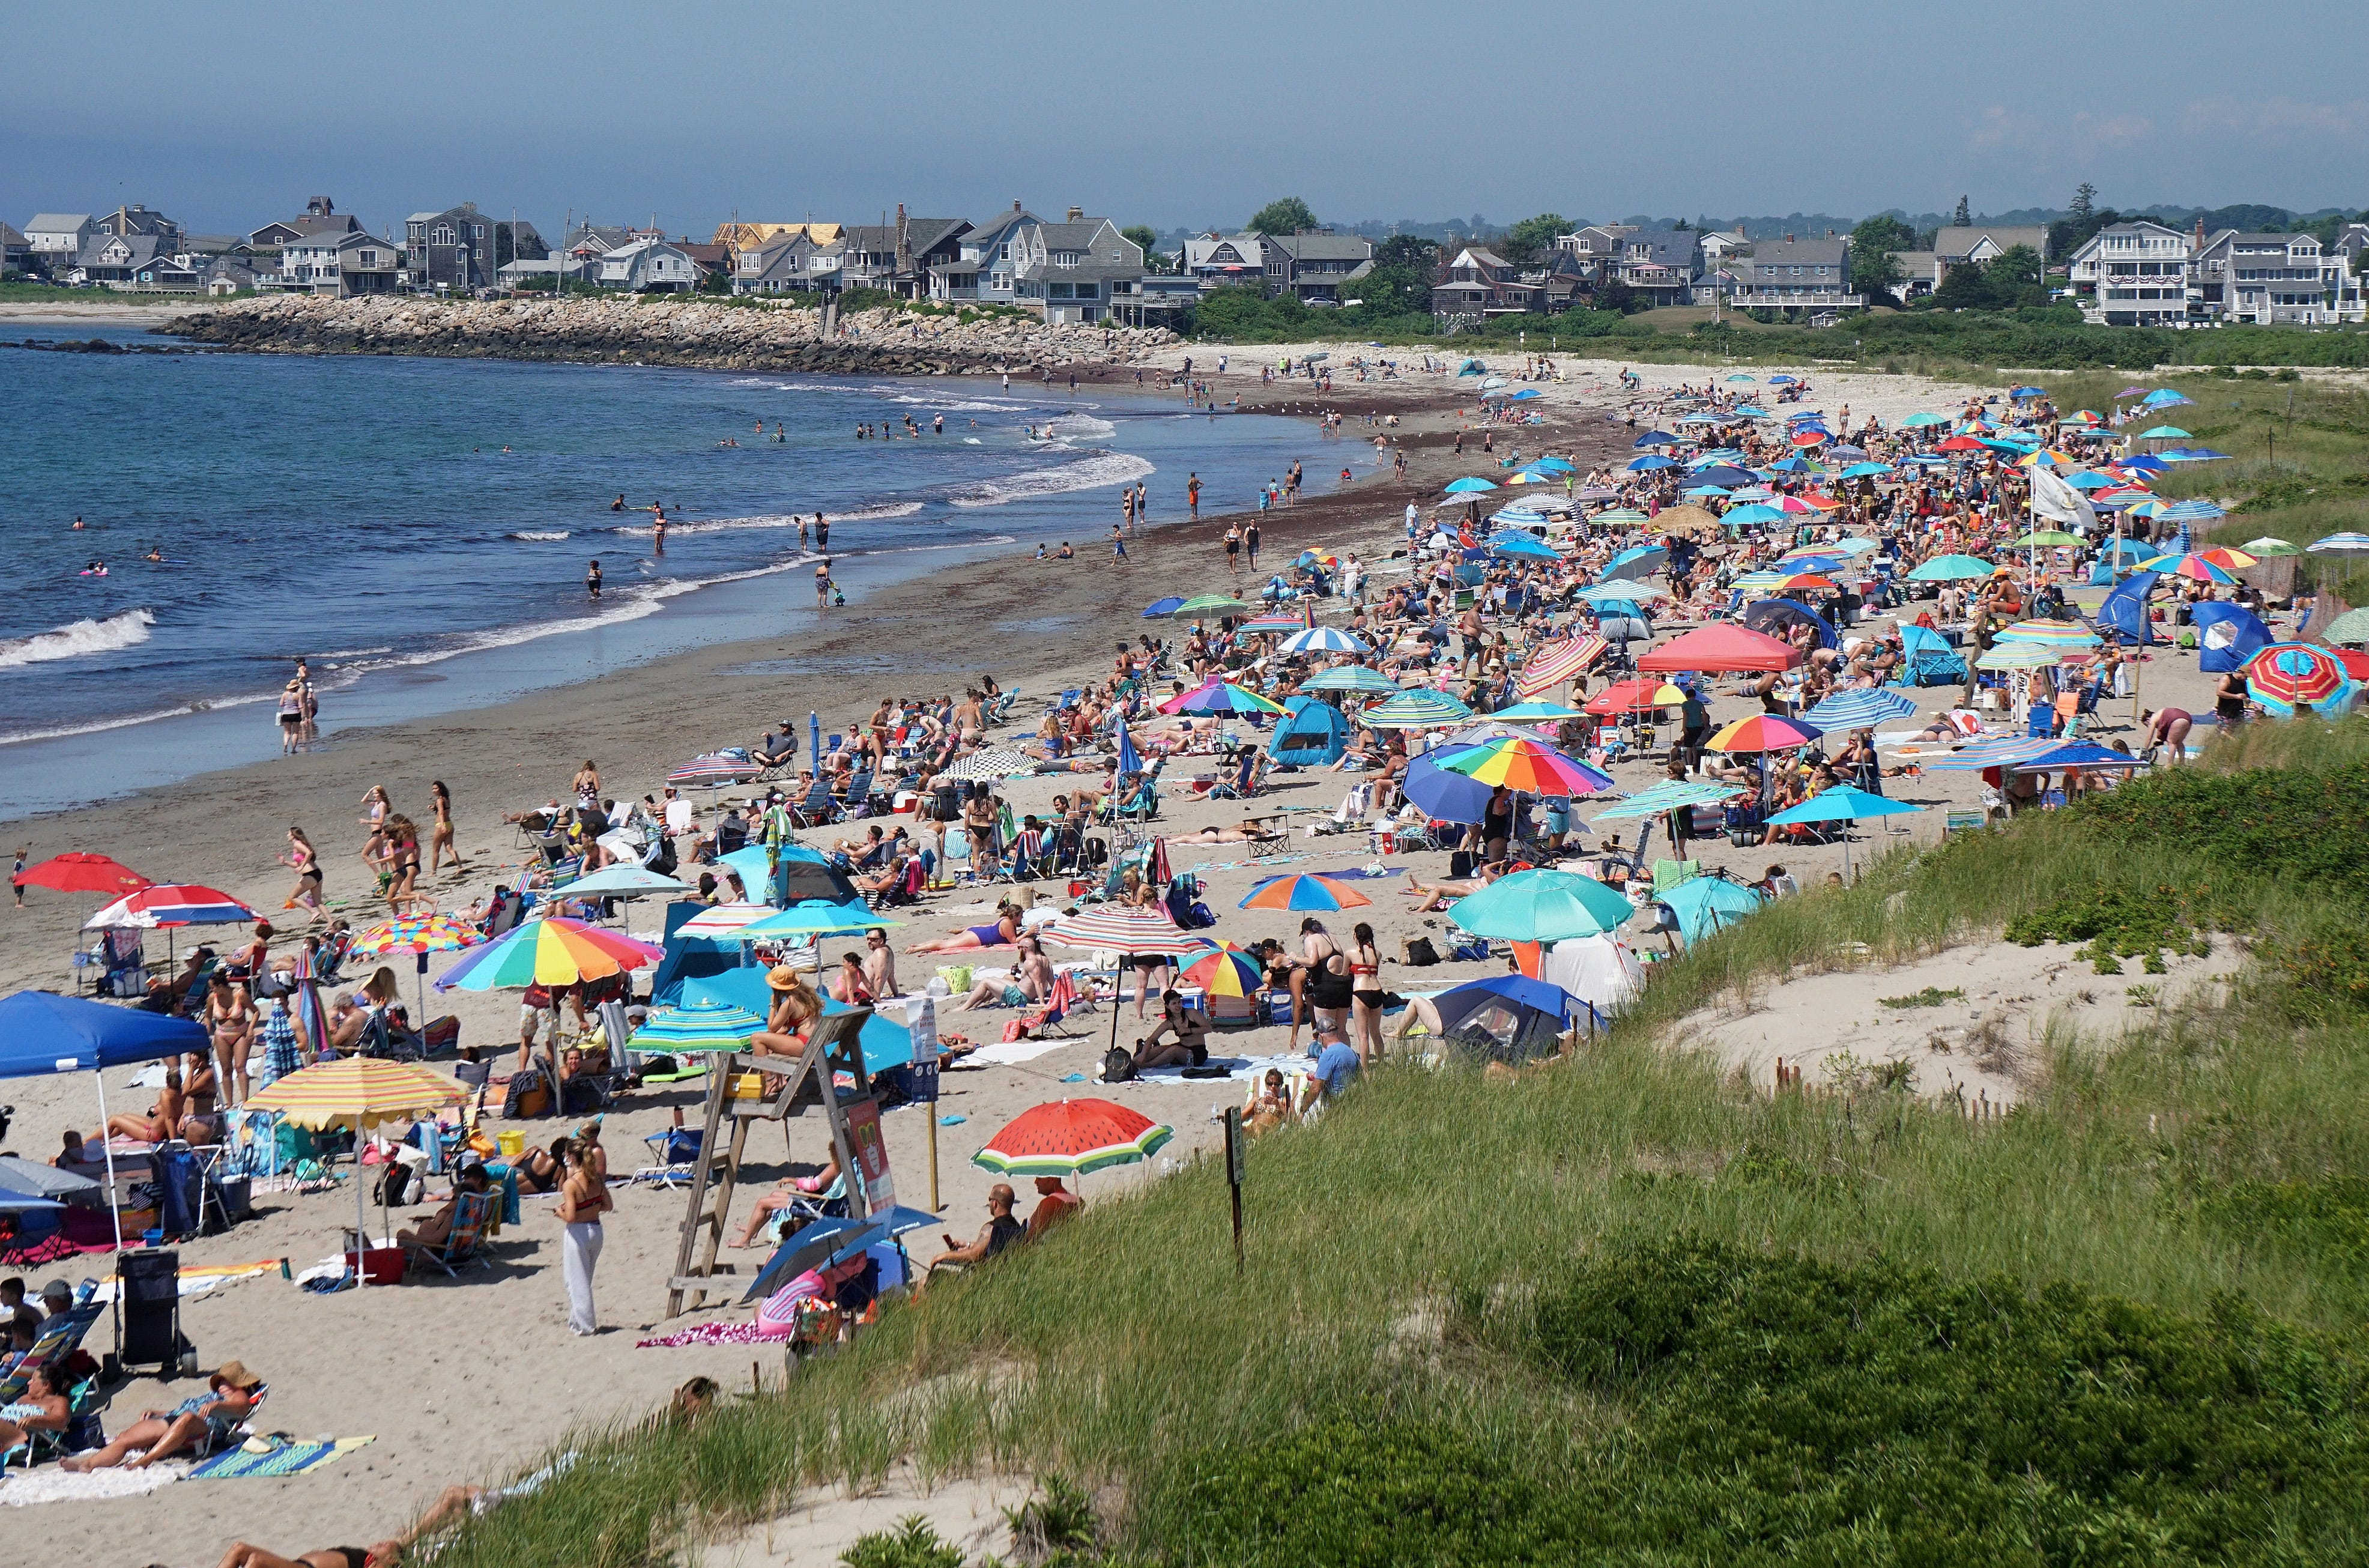 East Matunuck Beach is a popular place to enjoy the water and sun.